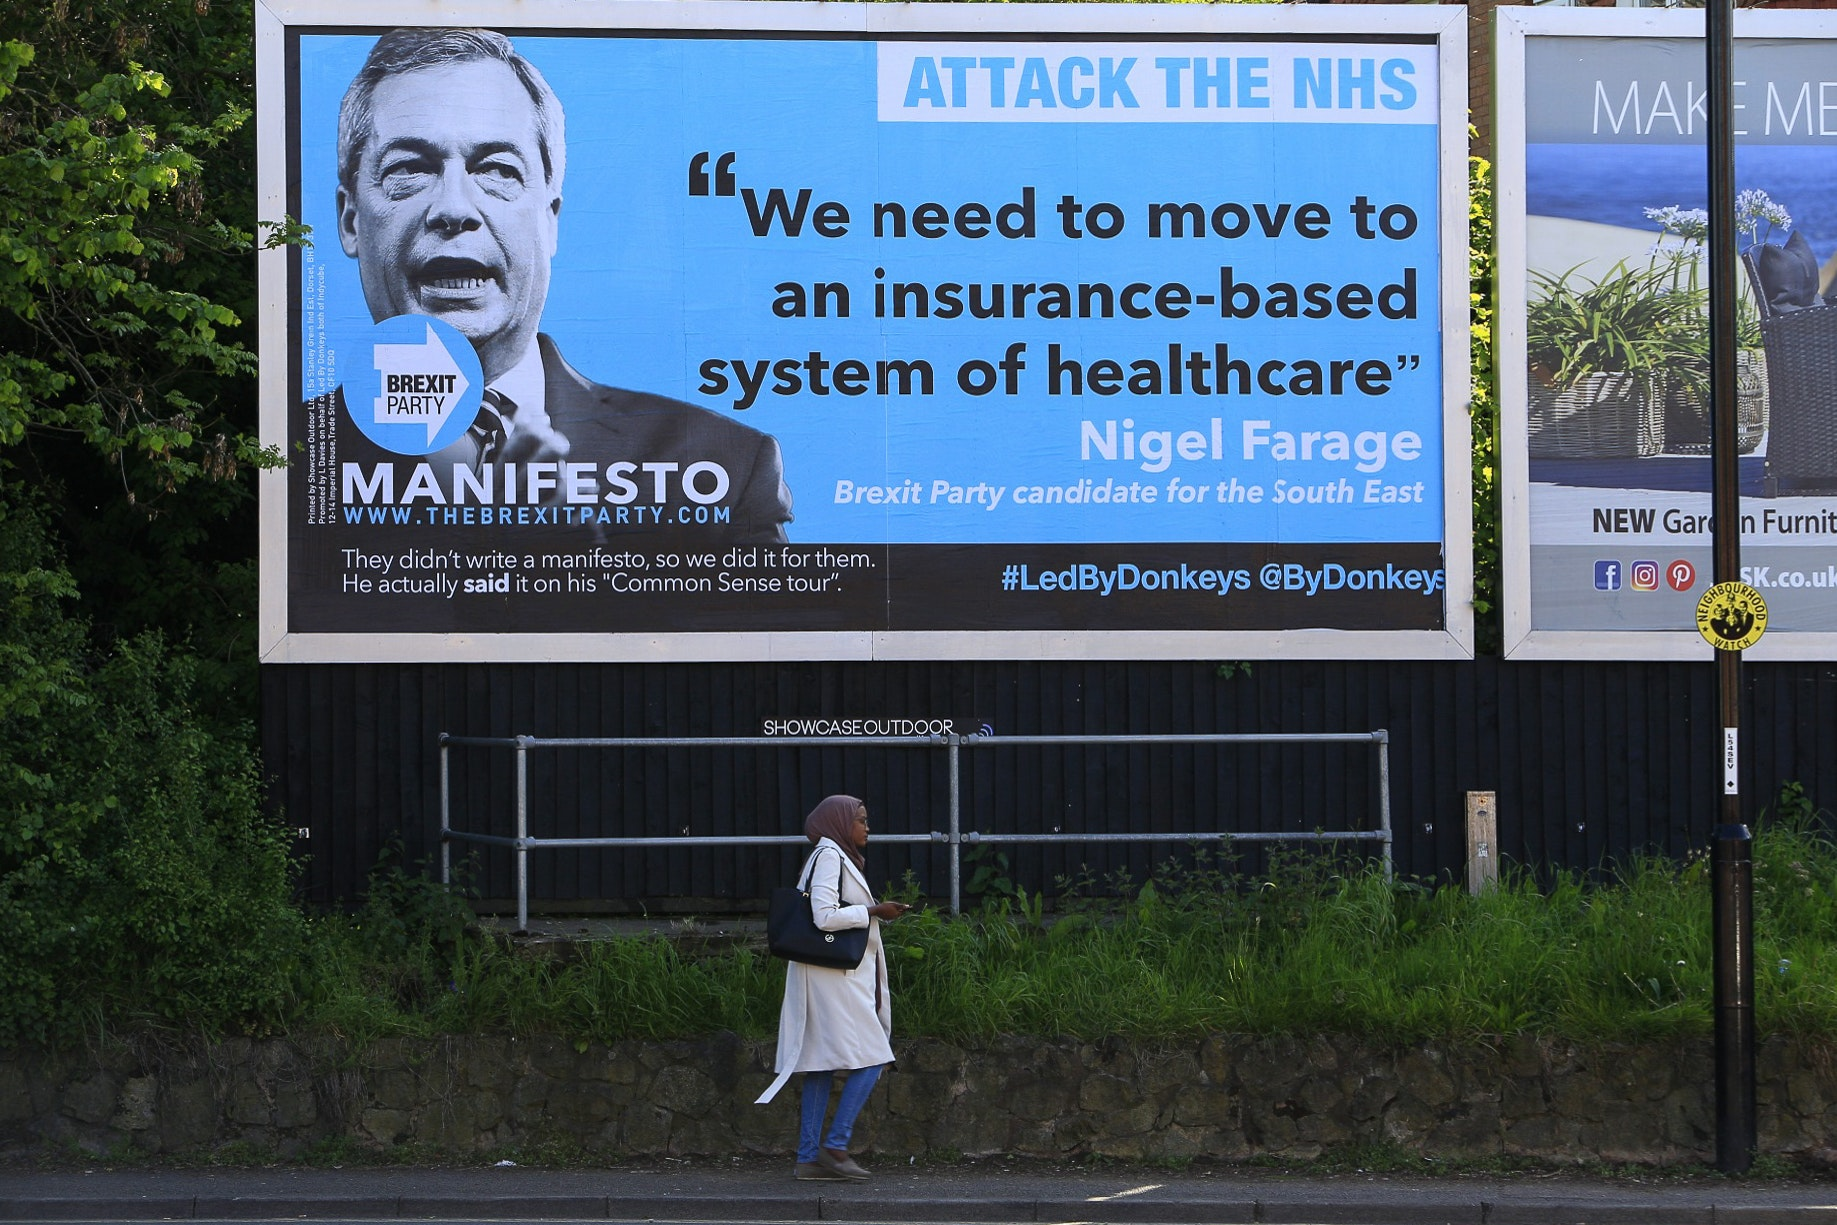 Anti-Brexit billboard